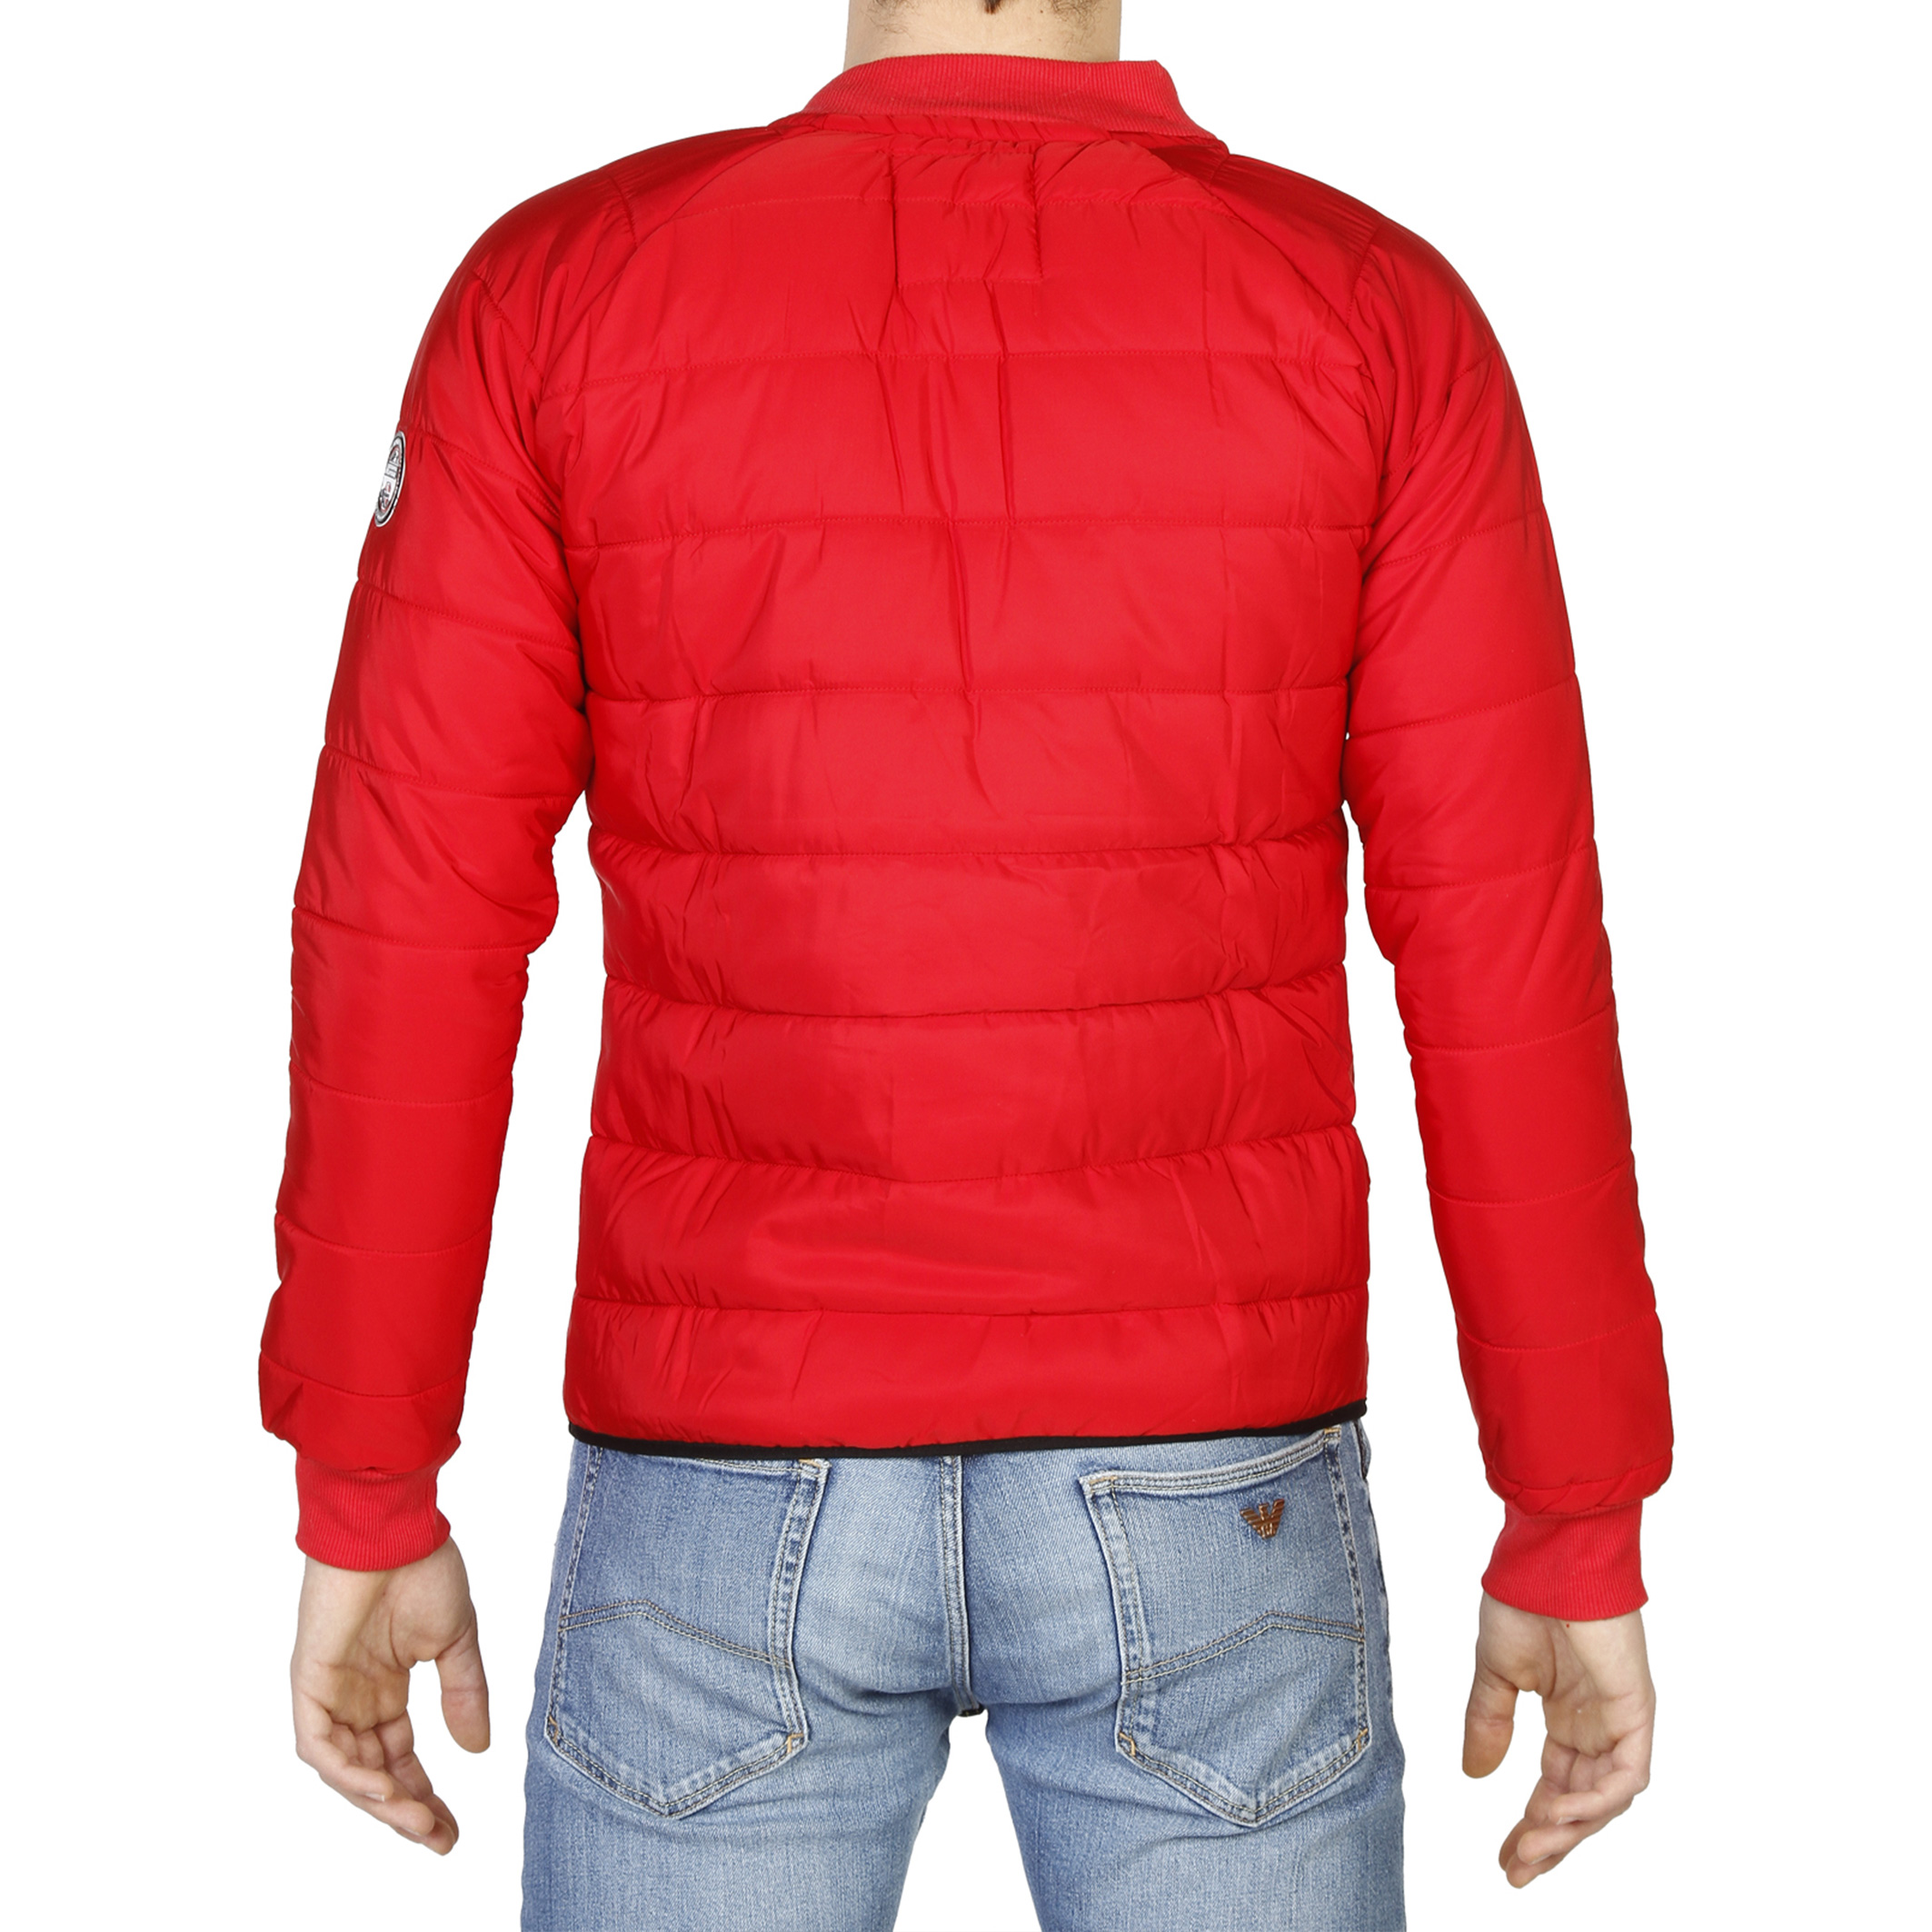 Vestes & blousons  Geographical norway Compact_man red